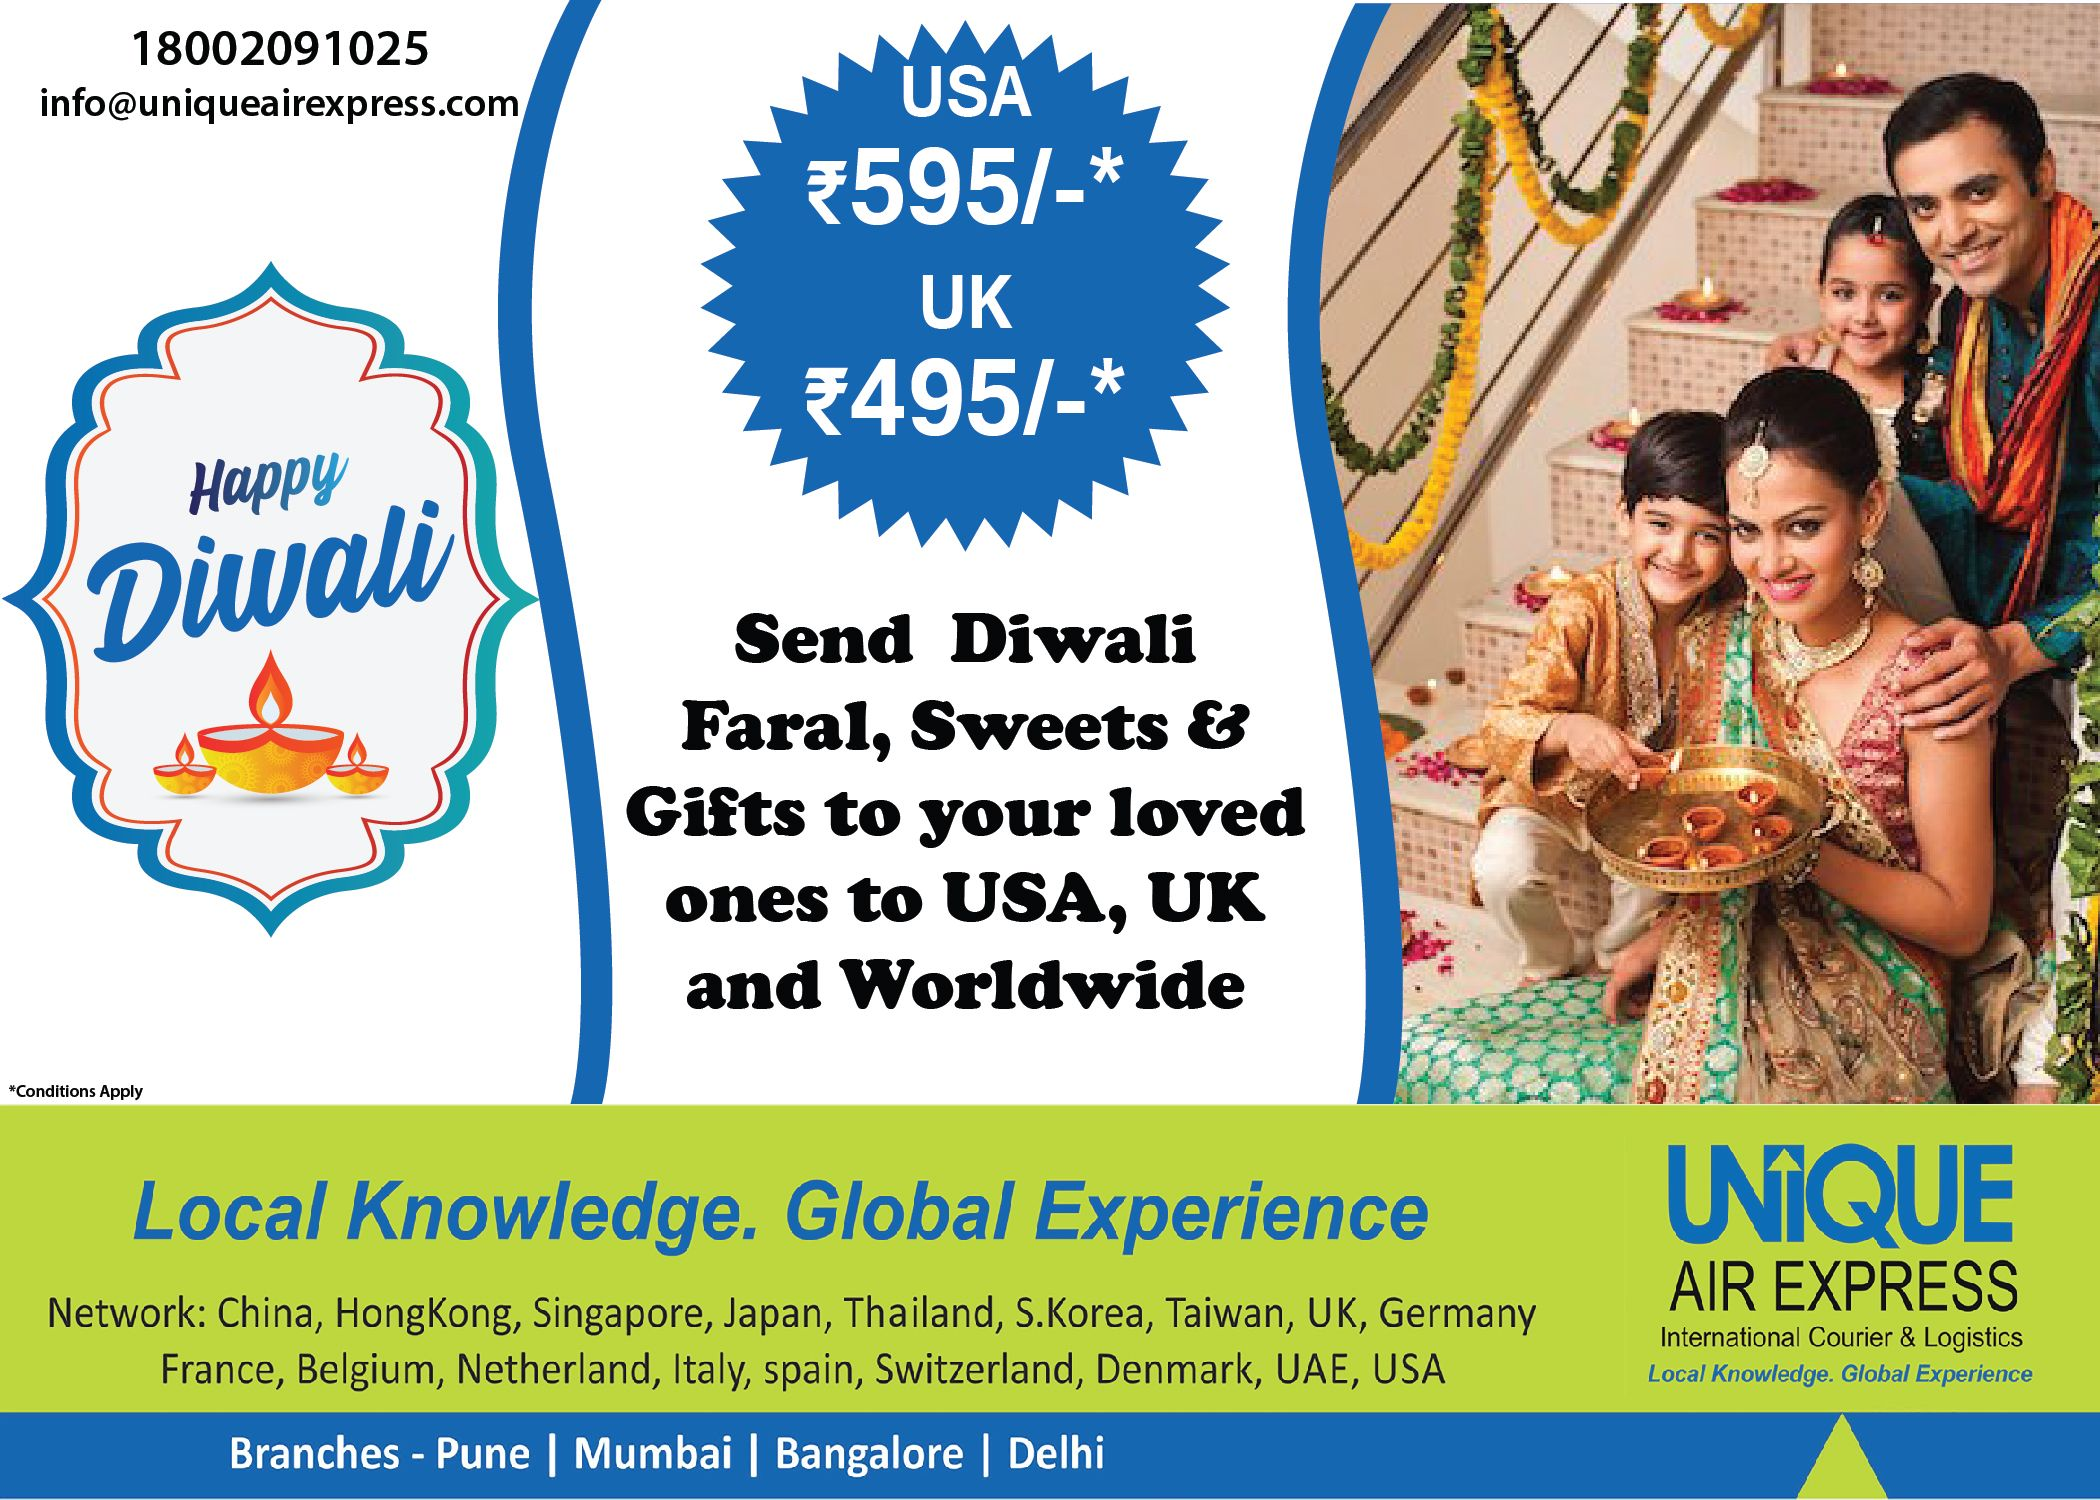 Send Diwali Parcel to USA, UK and Worldwide Sweets gift